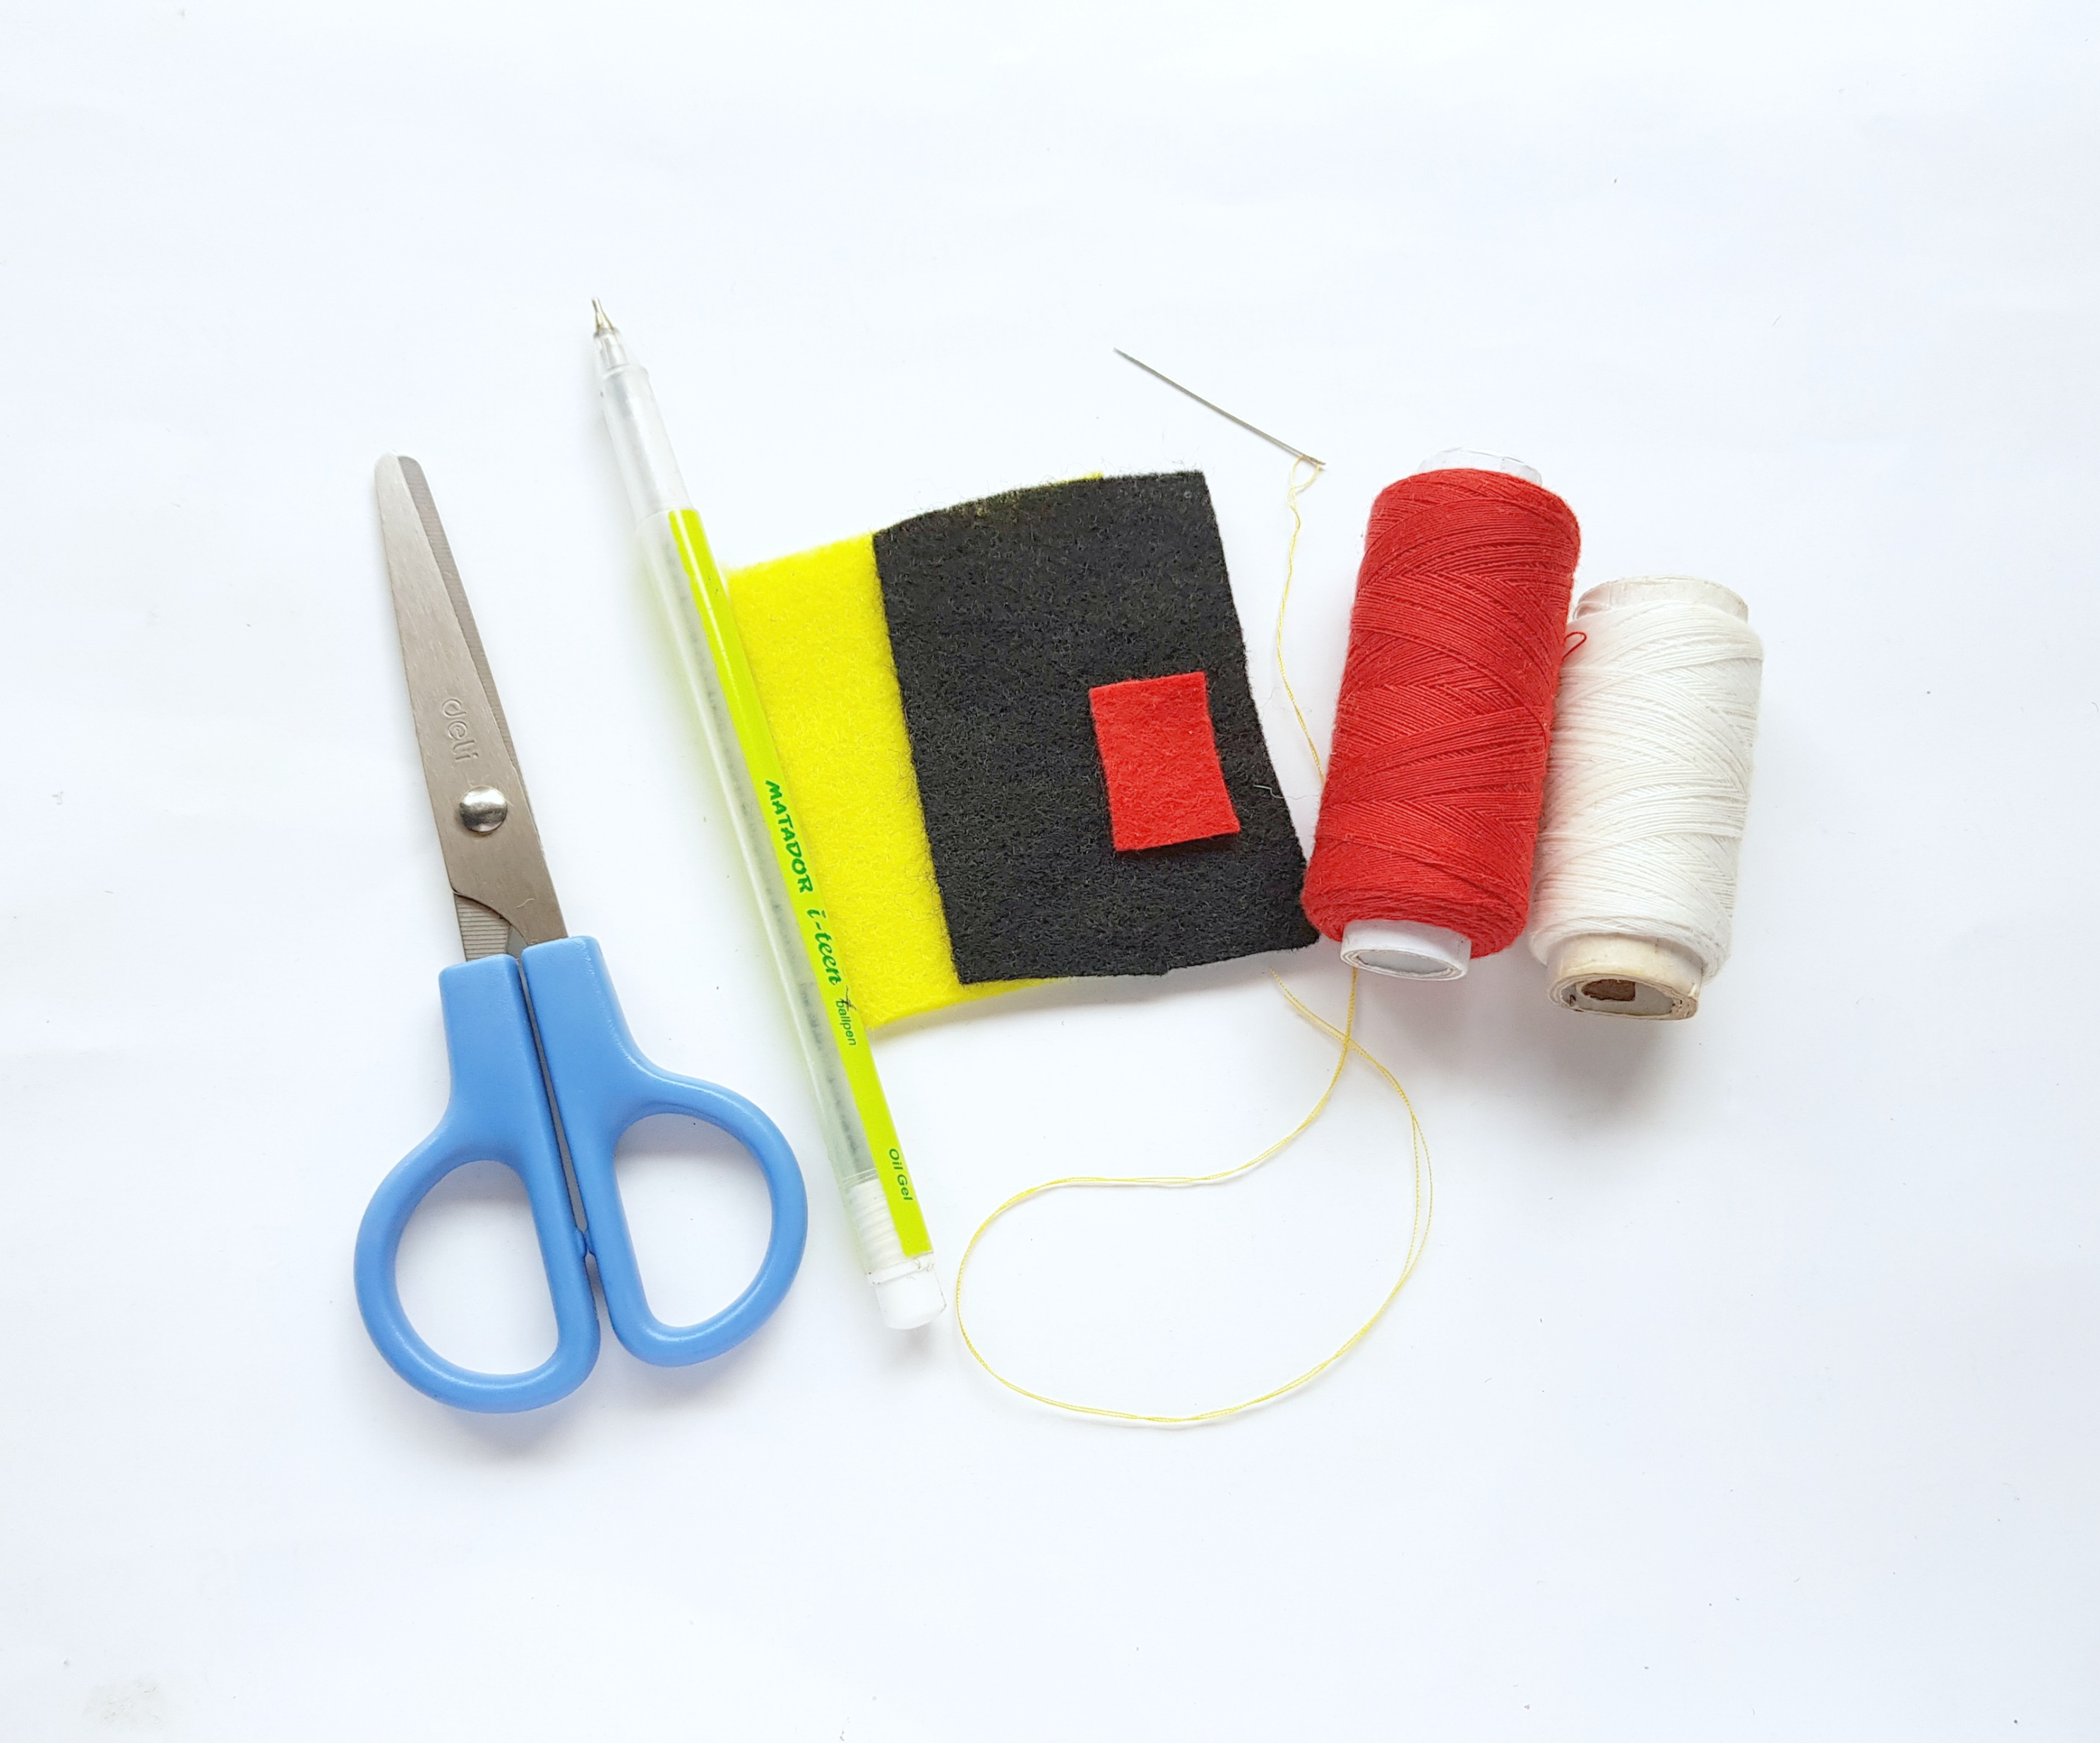 A picture of supplies needed to make a felt Pikachu: scissors, pen, felt in yellow, red, white, and black, and a needle and thread.